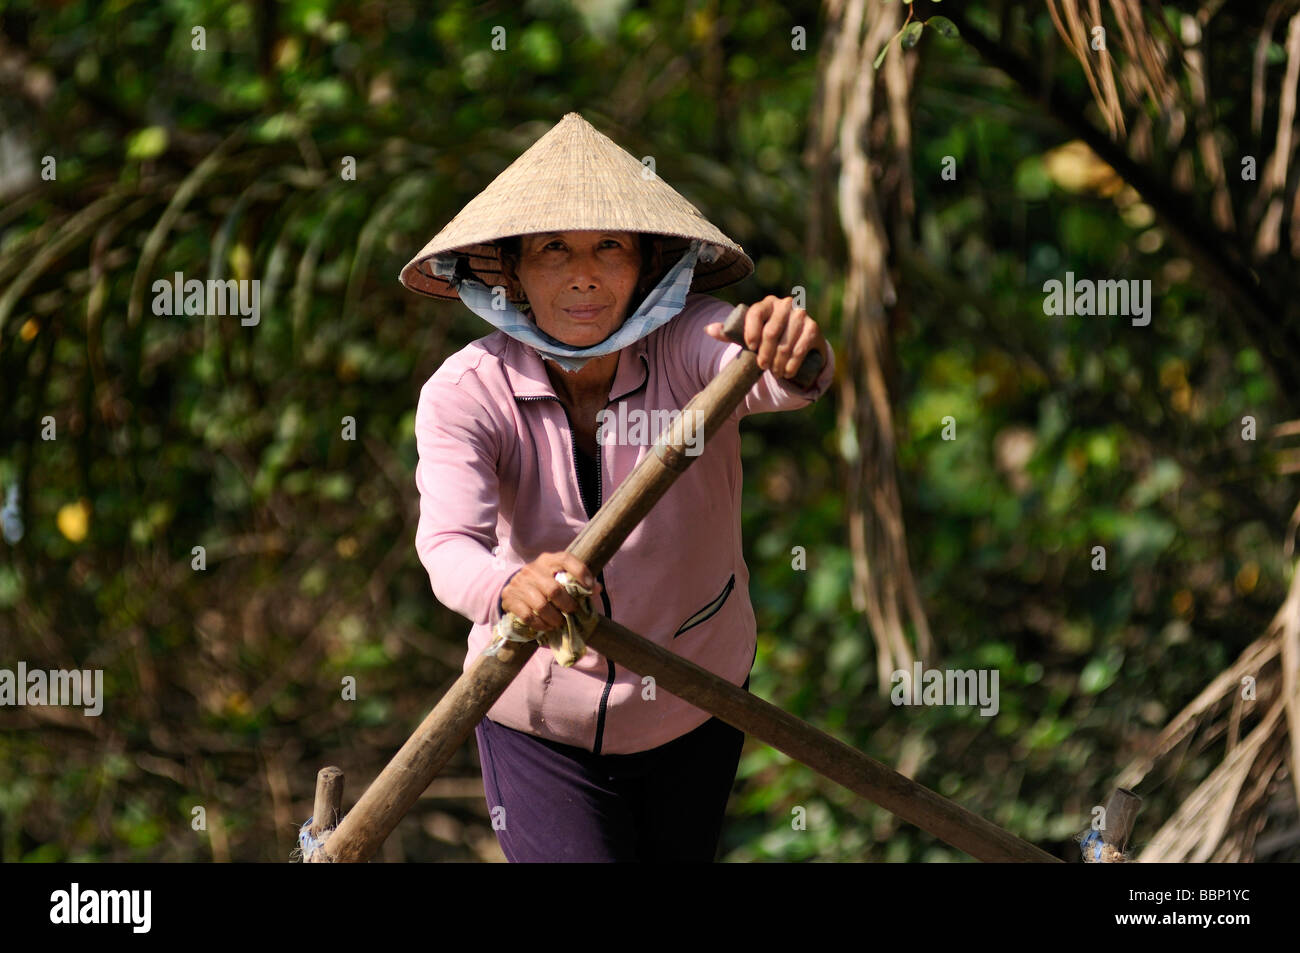 Woman with a traditional hat, cone-shaped hat made of palm leaves, rowing a wooden boat full of fruit on the mekong, - Stock Image